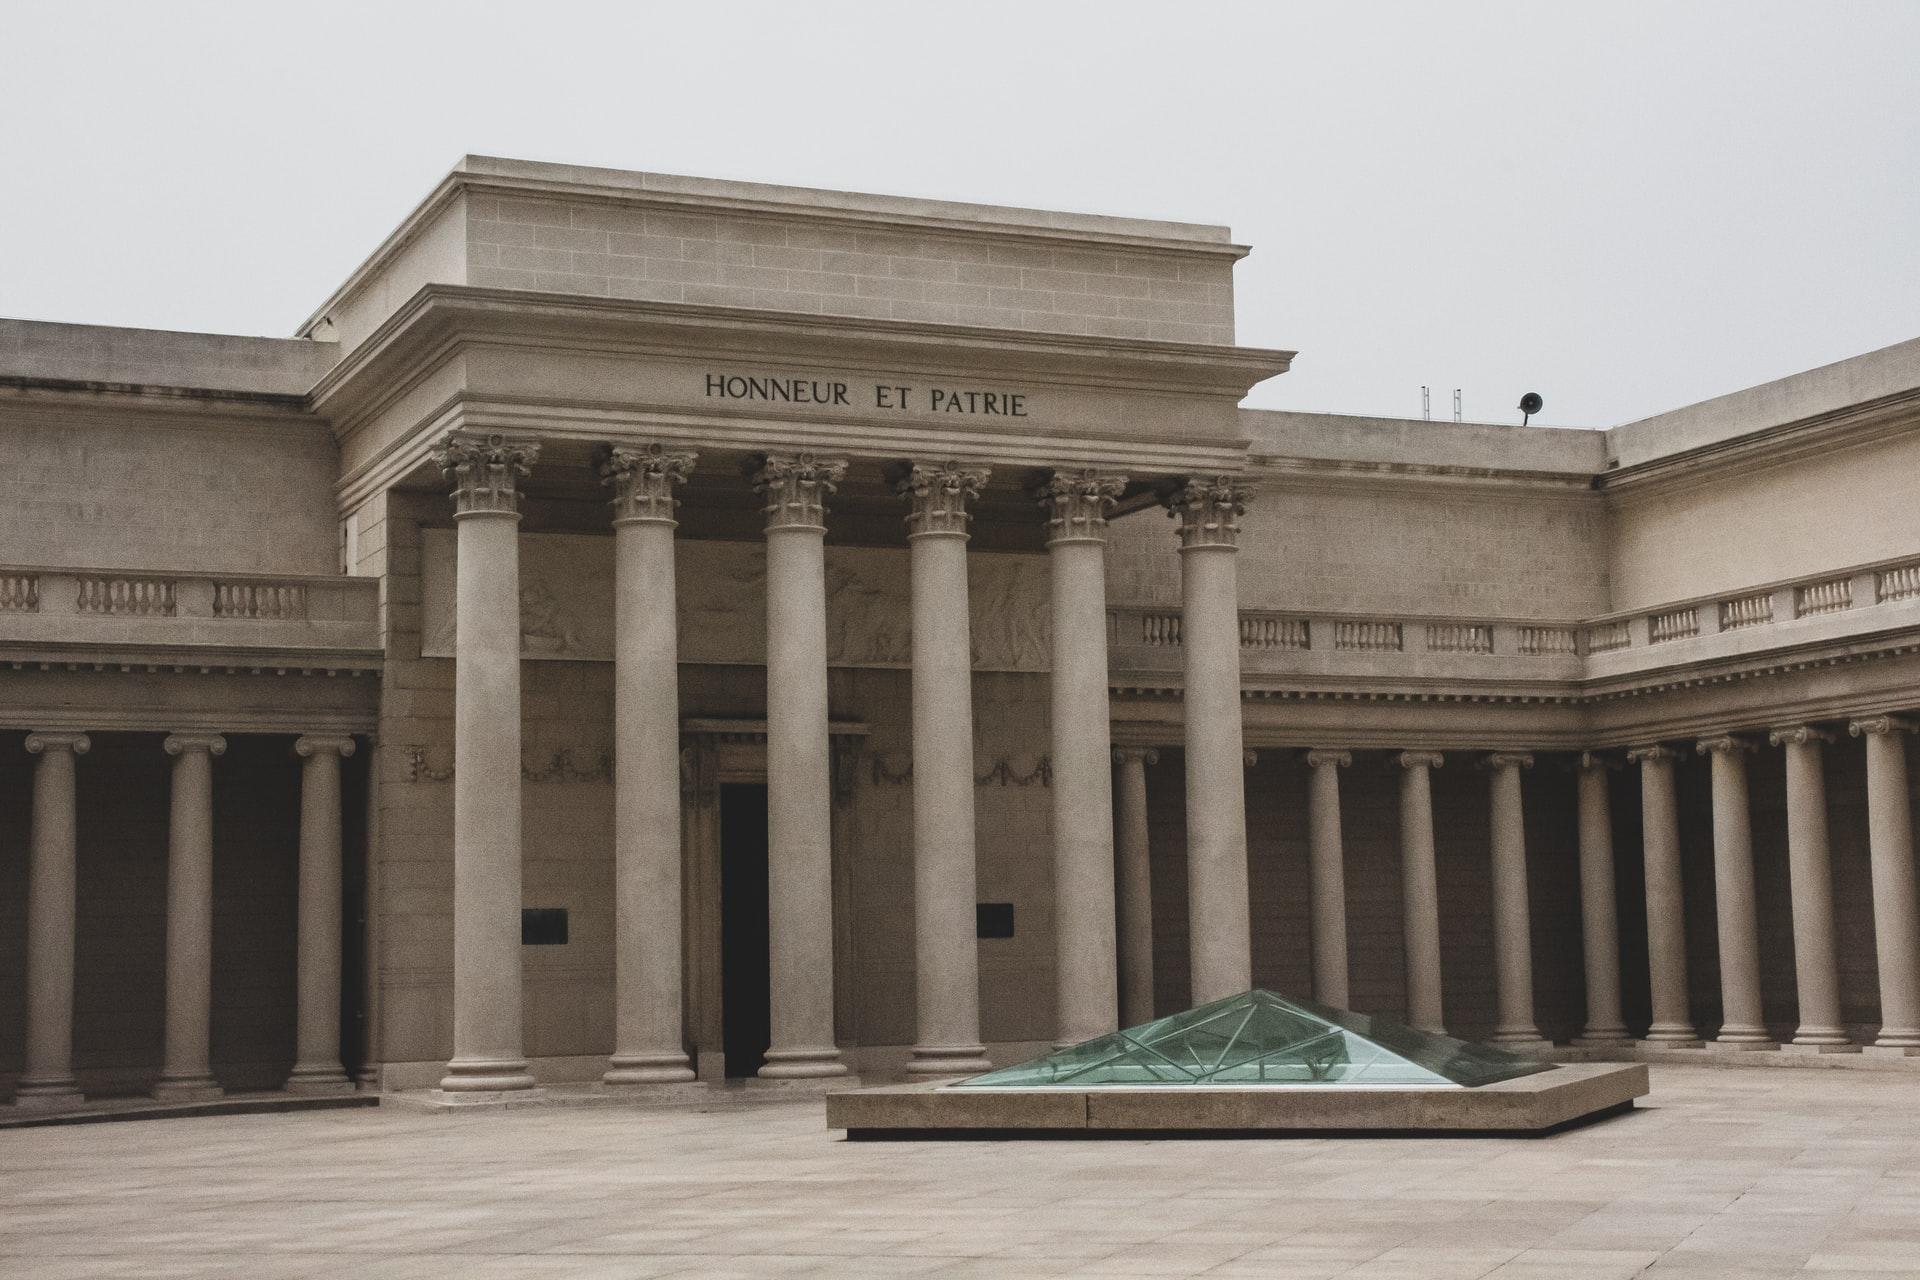 Legion of Honor facade with columns